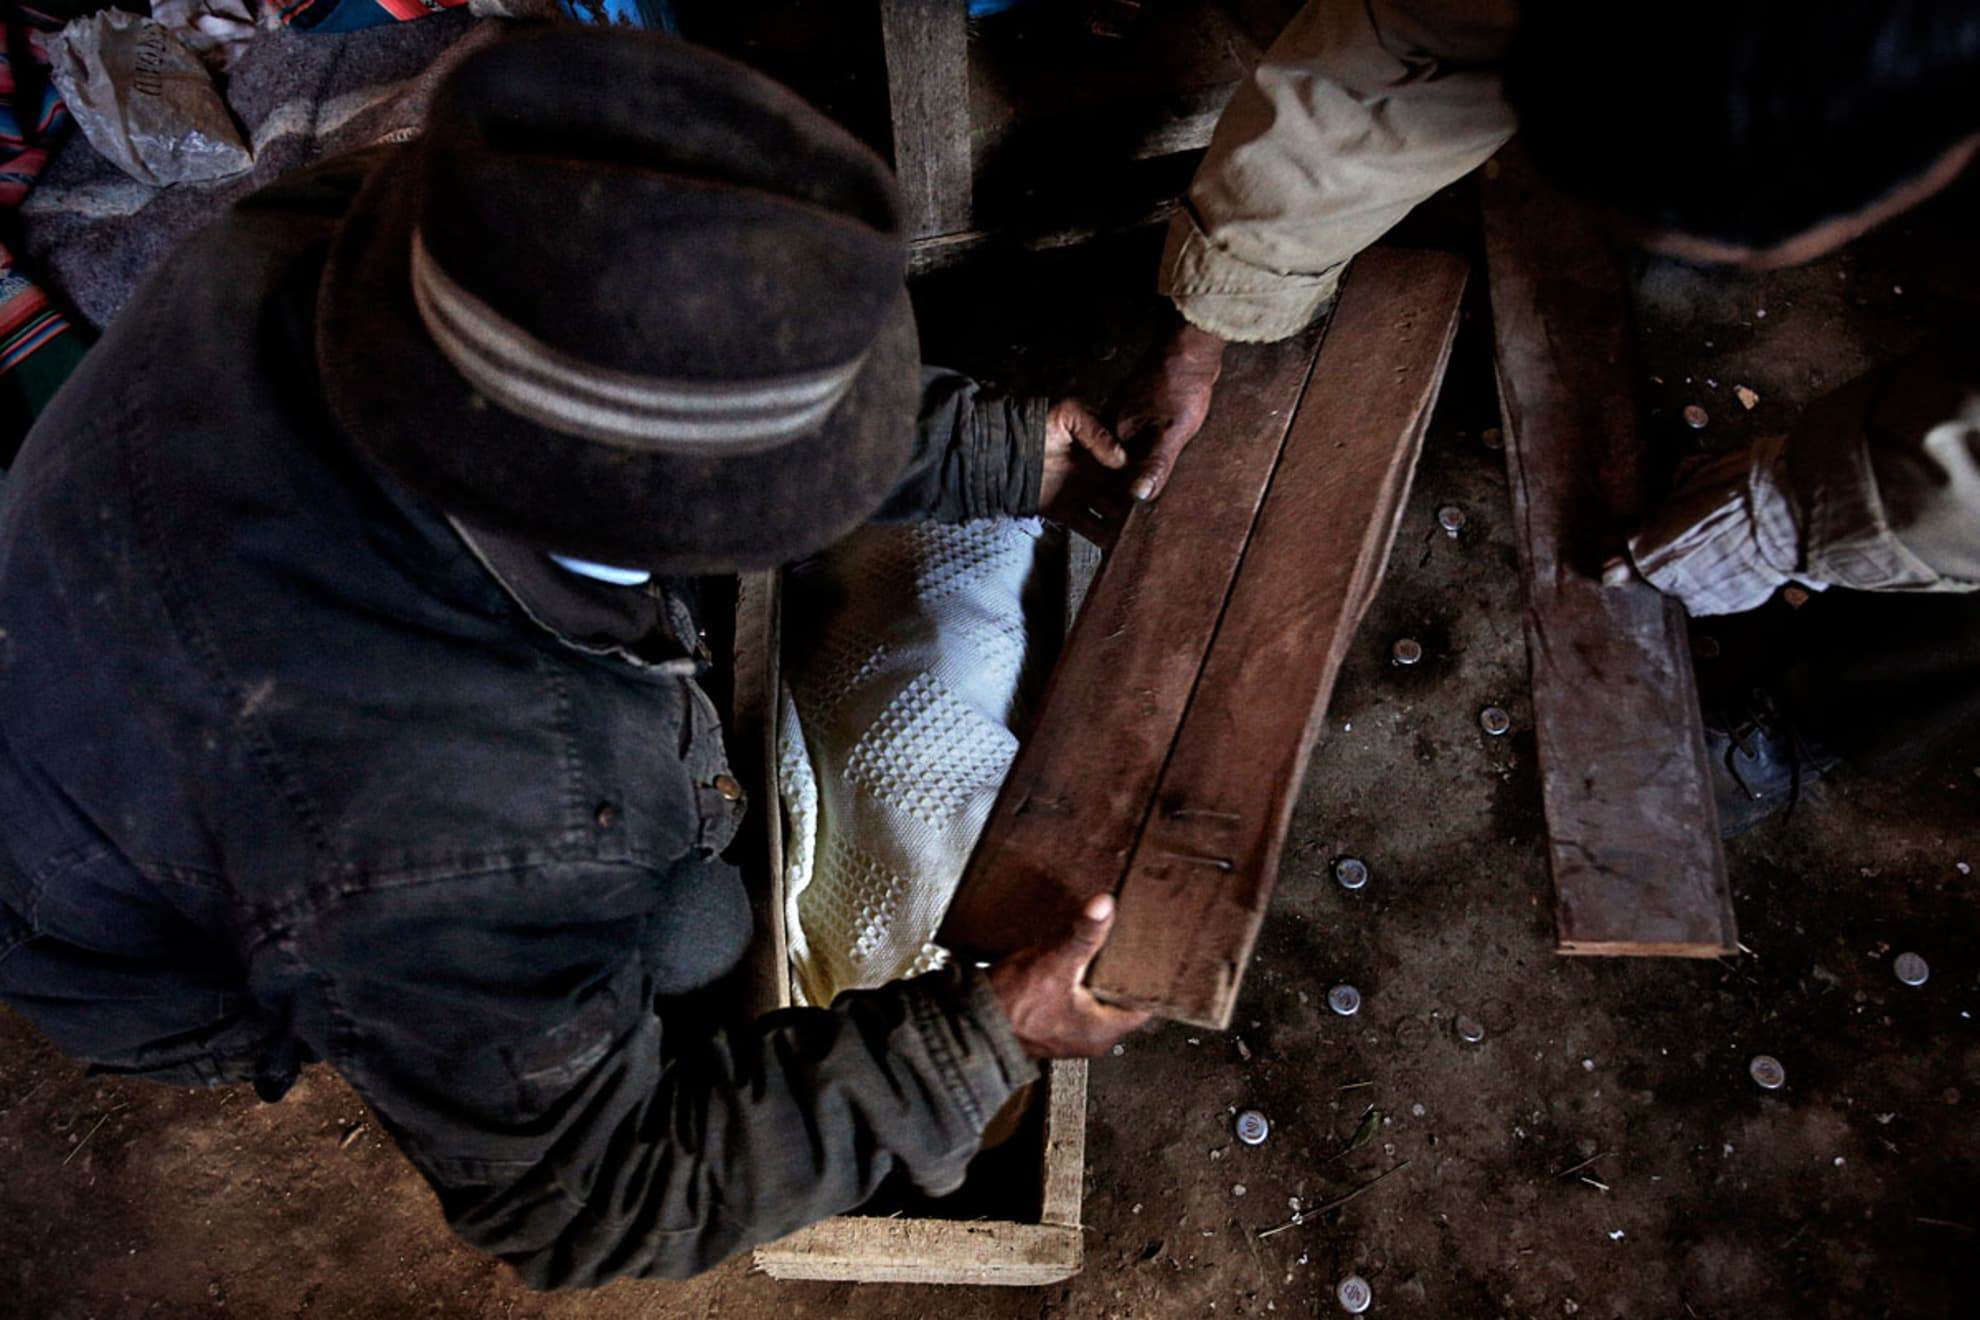 Isidro Guachalla, 60 years old and Antonio Tola Lima, 66 years old, close the coffin of Andrea Paris's baby Mamani, 45 years old, while one of Andrea's daughters, 12 years old, watches them. Isidro and Antonio Tola are neighbors of Andrea's mother in Belén Iquiaca.